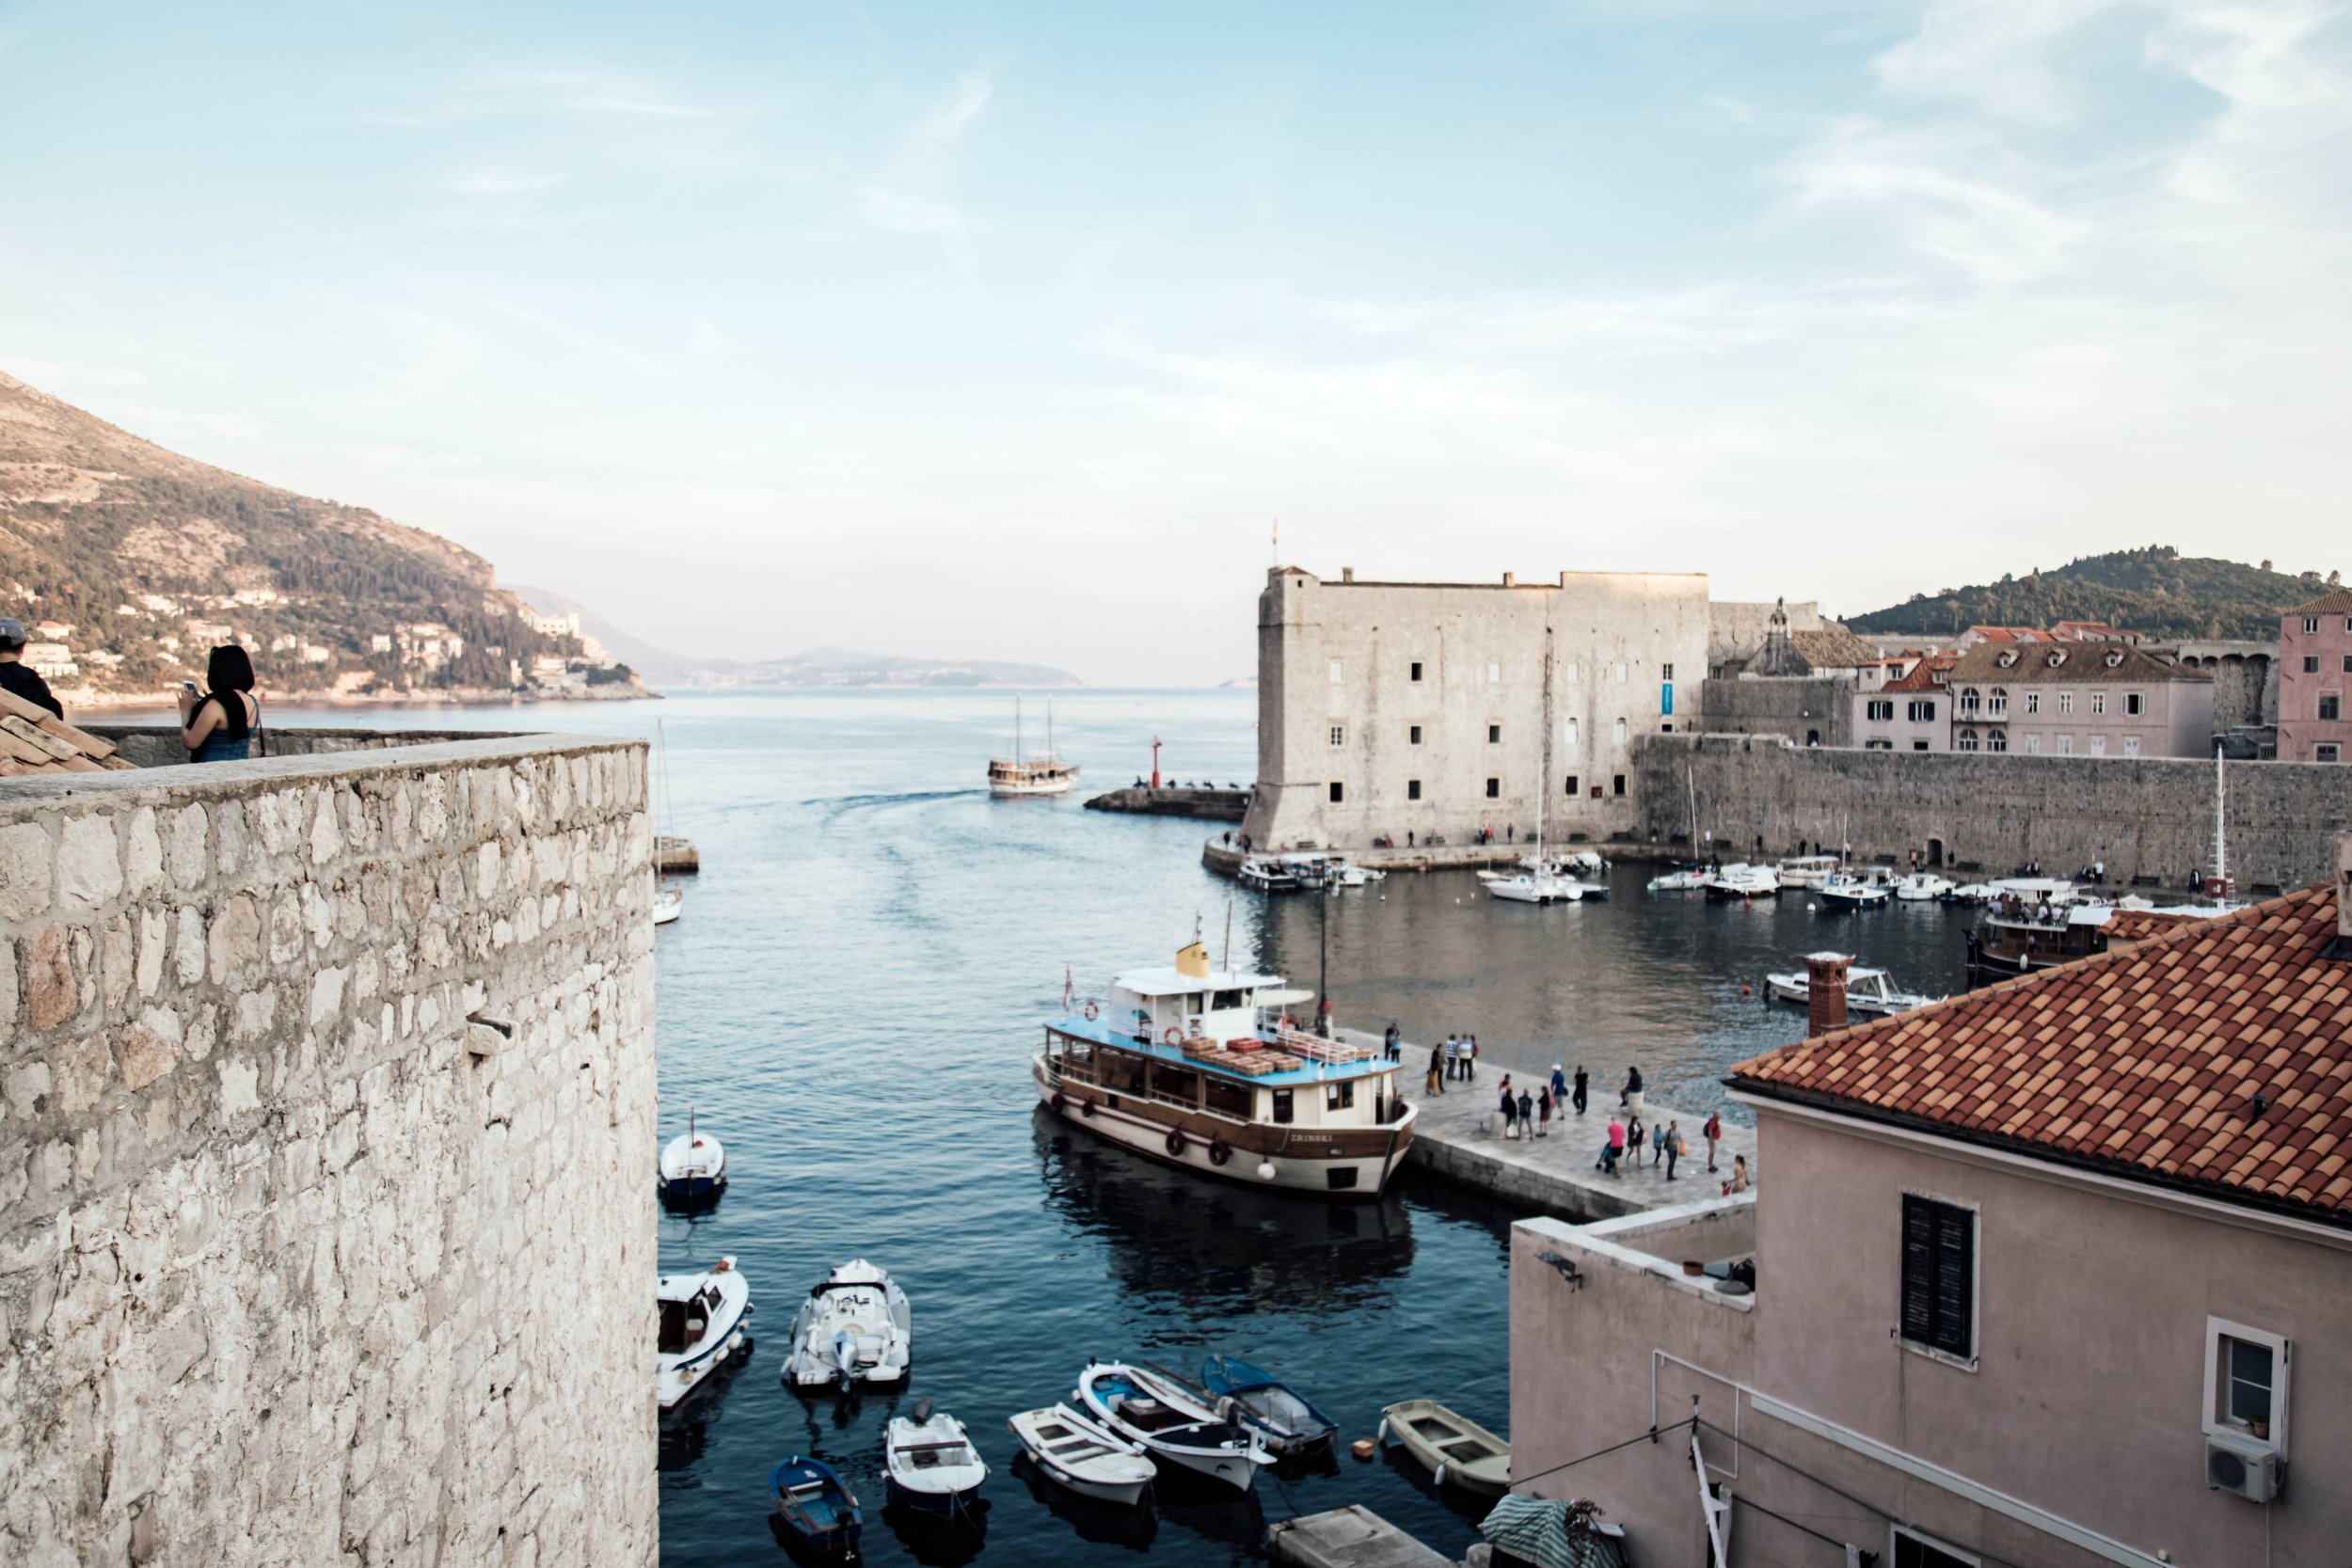 Travel_Photography_1_Dubrovnik-Croatia (96)-min.jpg